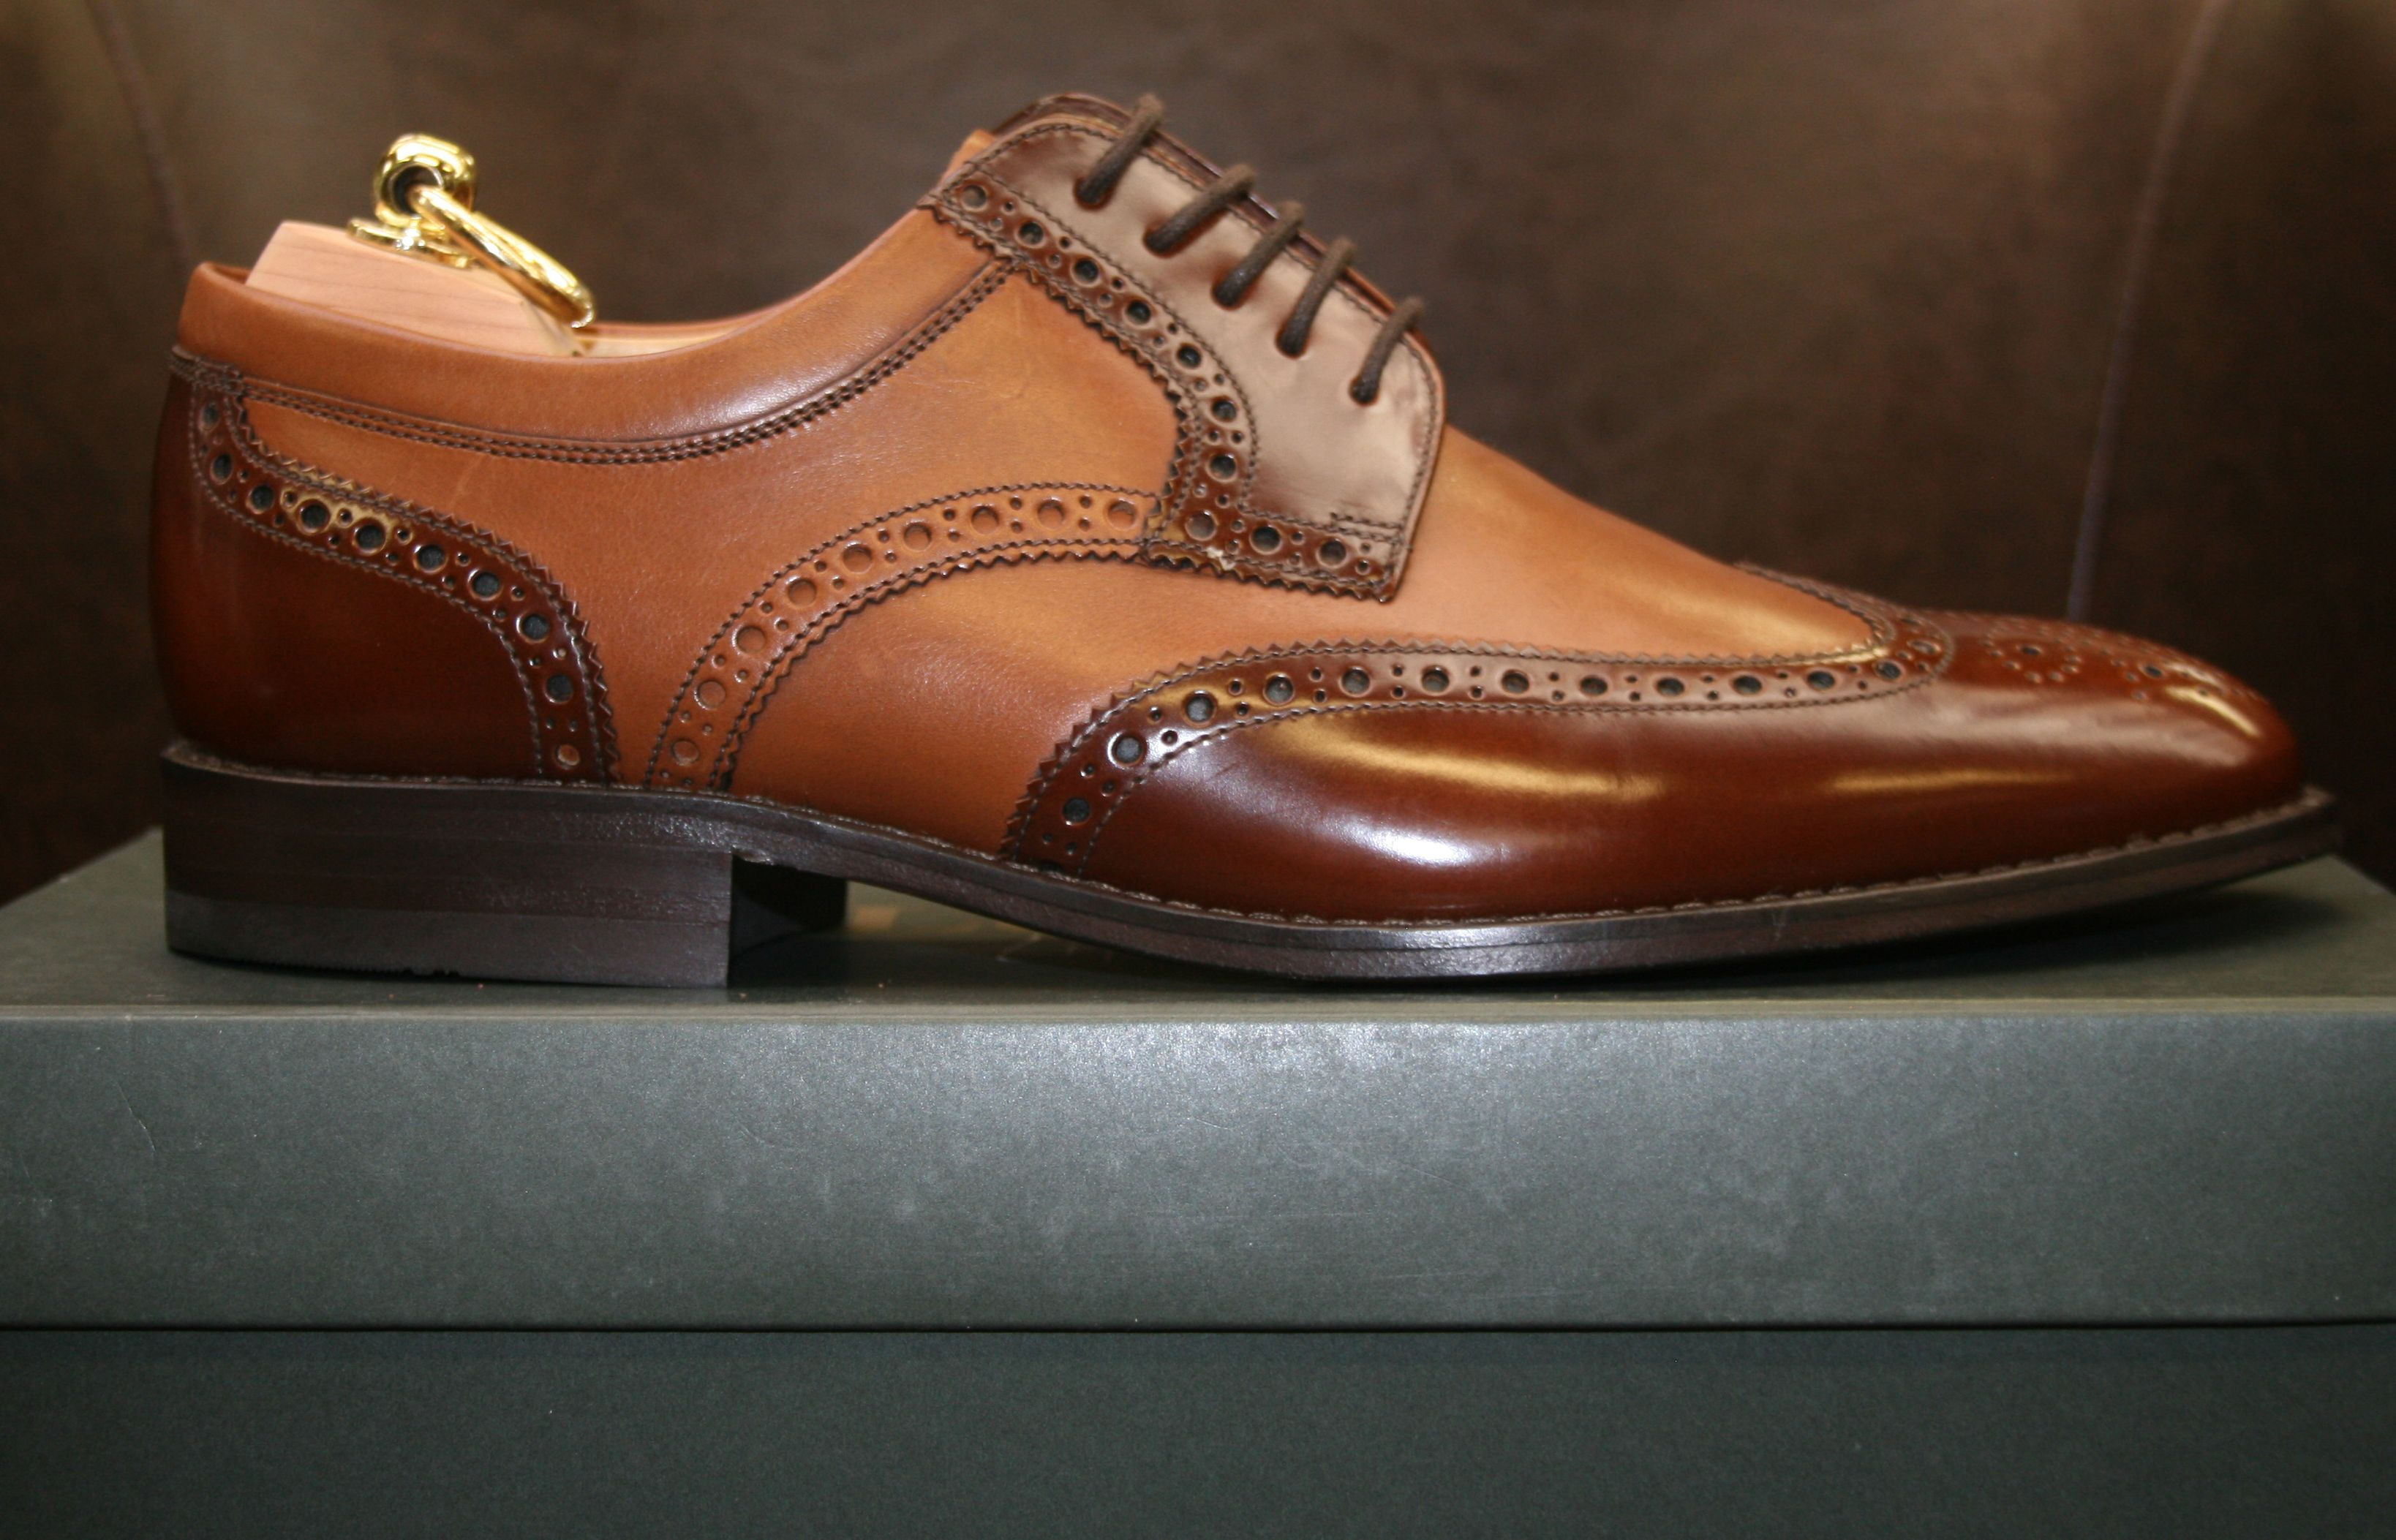 b5826a7c85fa7 Loake Pangbourne comes in the generous H fitting, suitable for the  gentleman with a wide